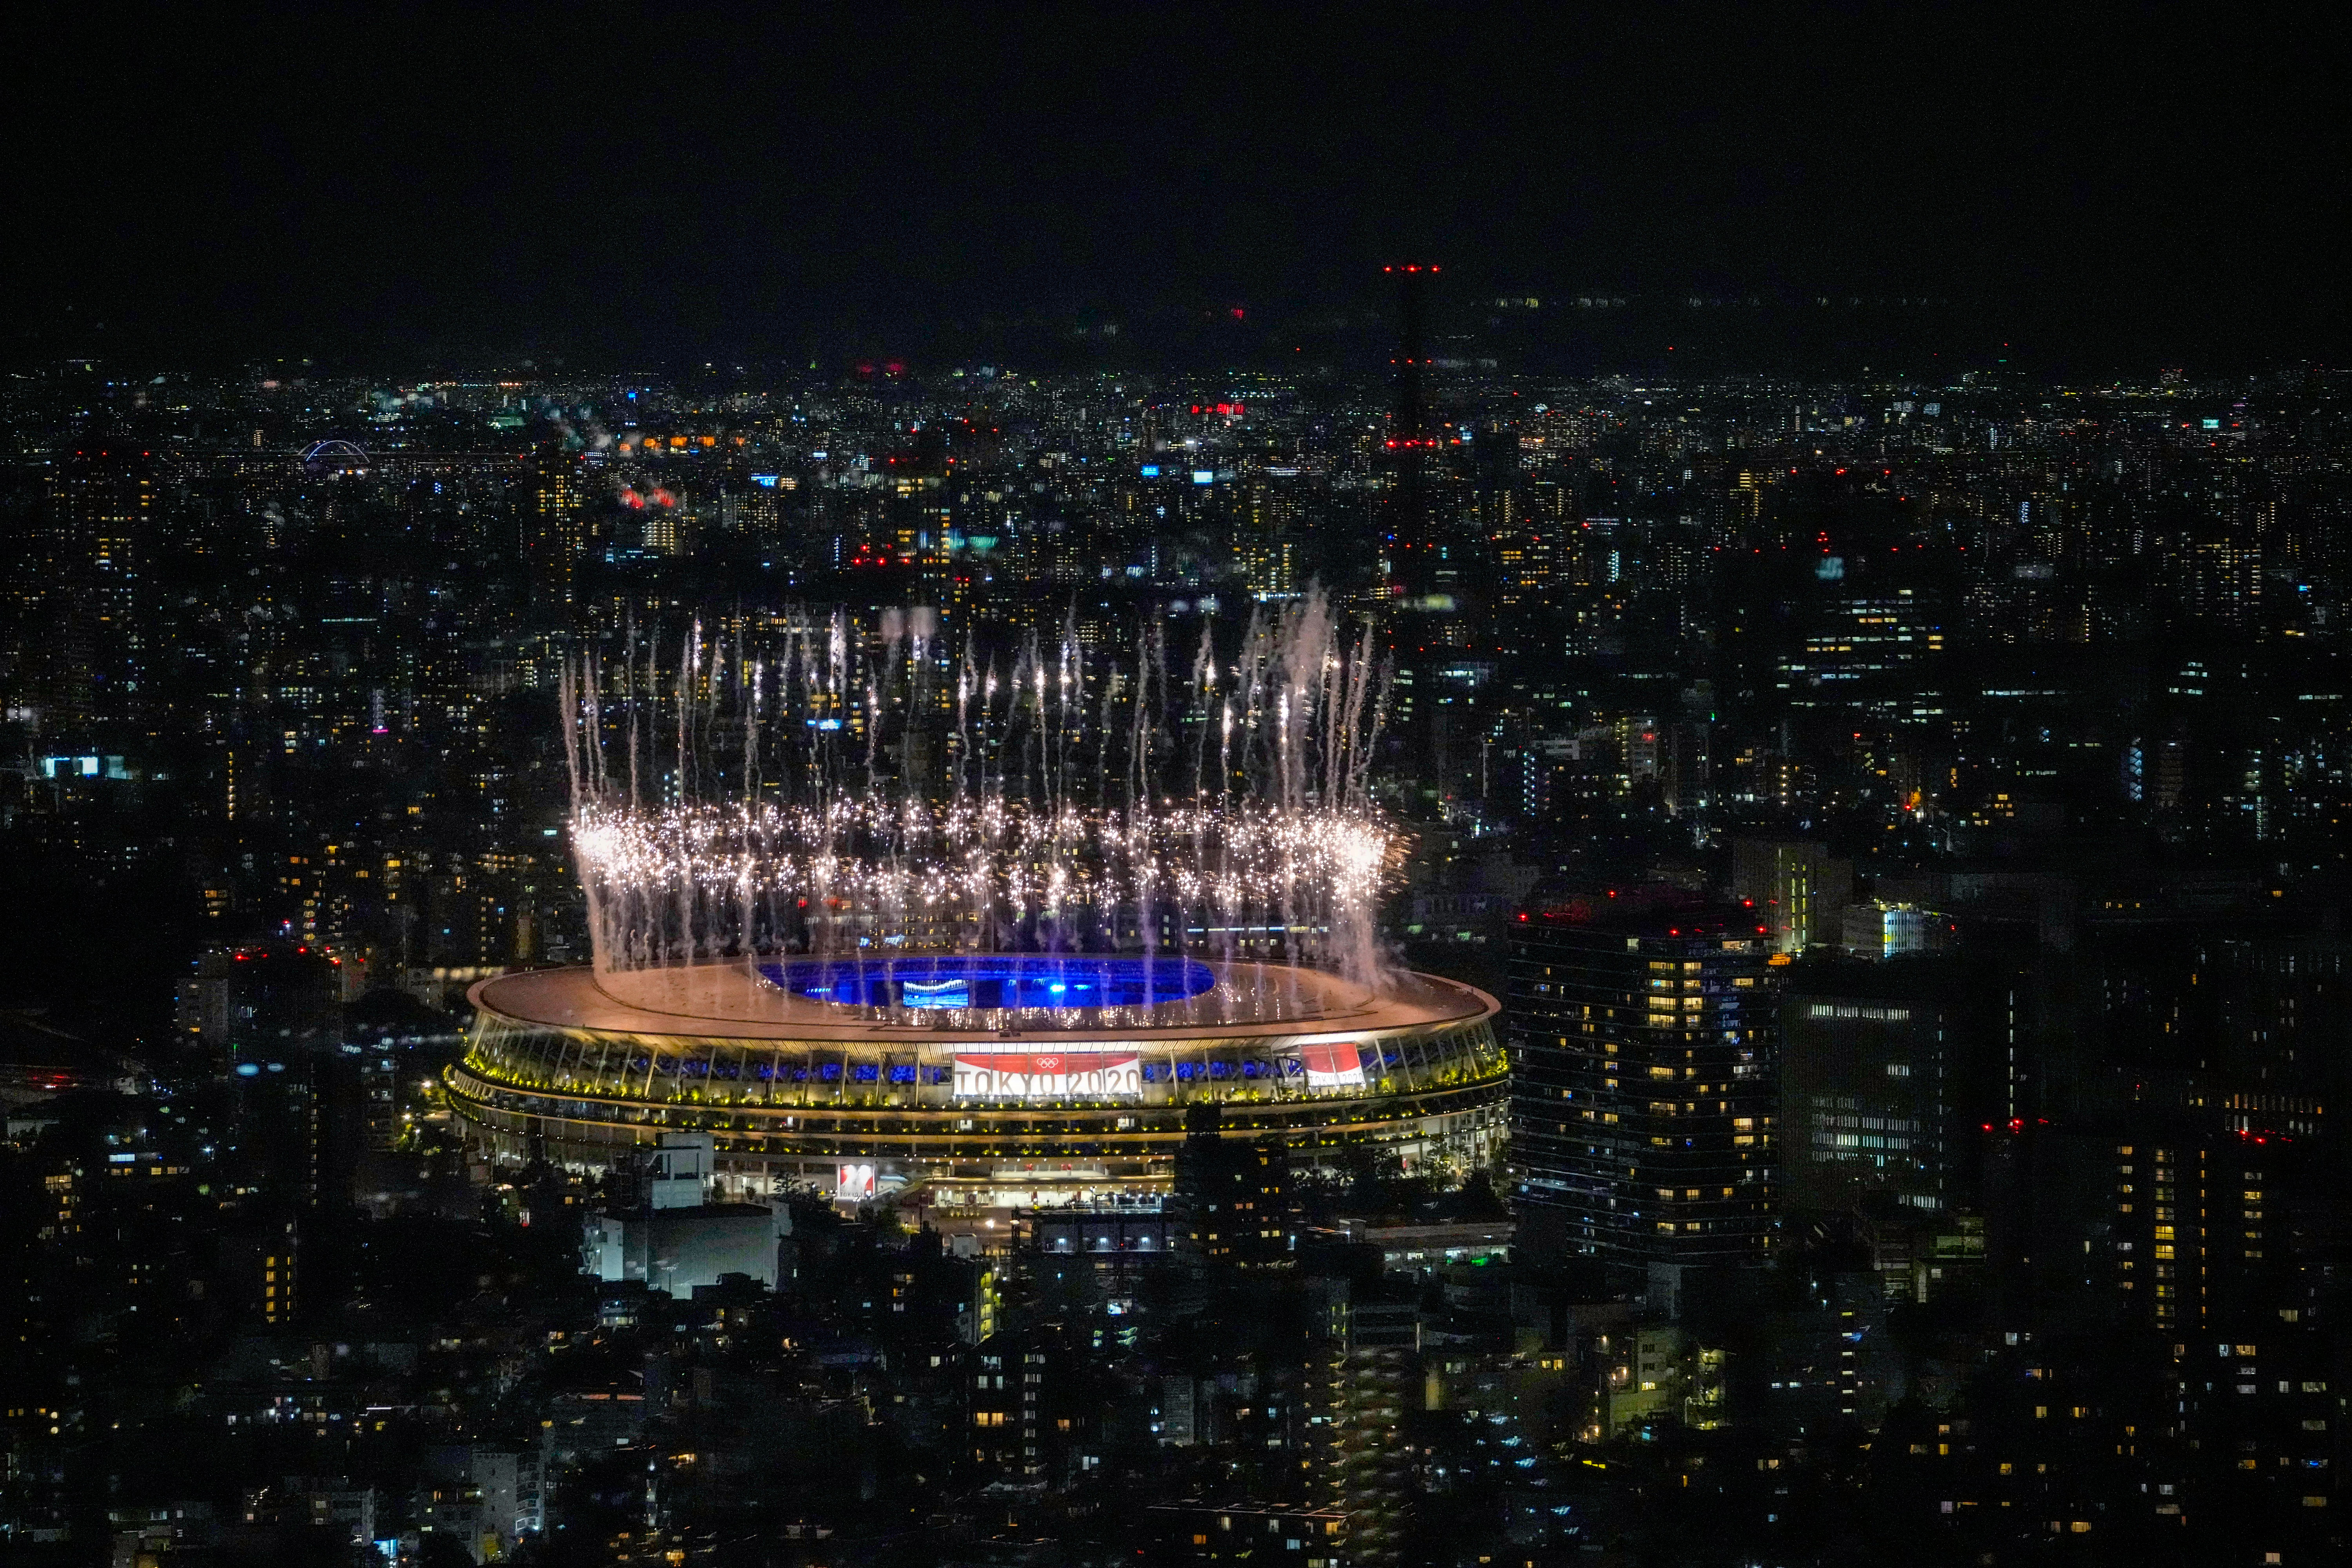 Fireworks explode over Tokyo's National Stadium during the Olympics' closing ceremony on August 8, 2021.